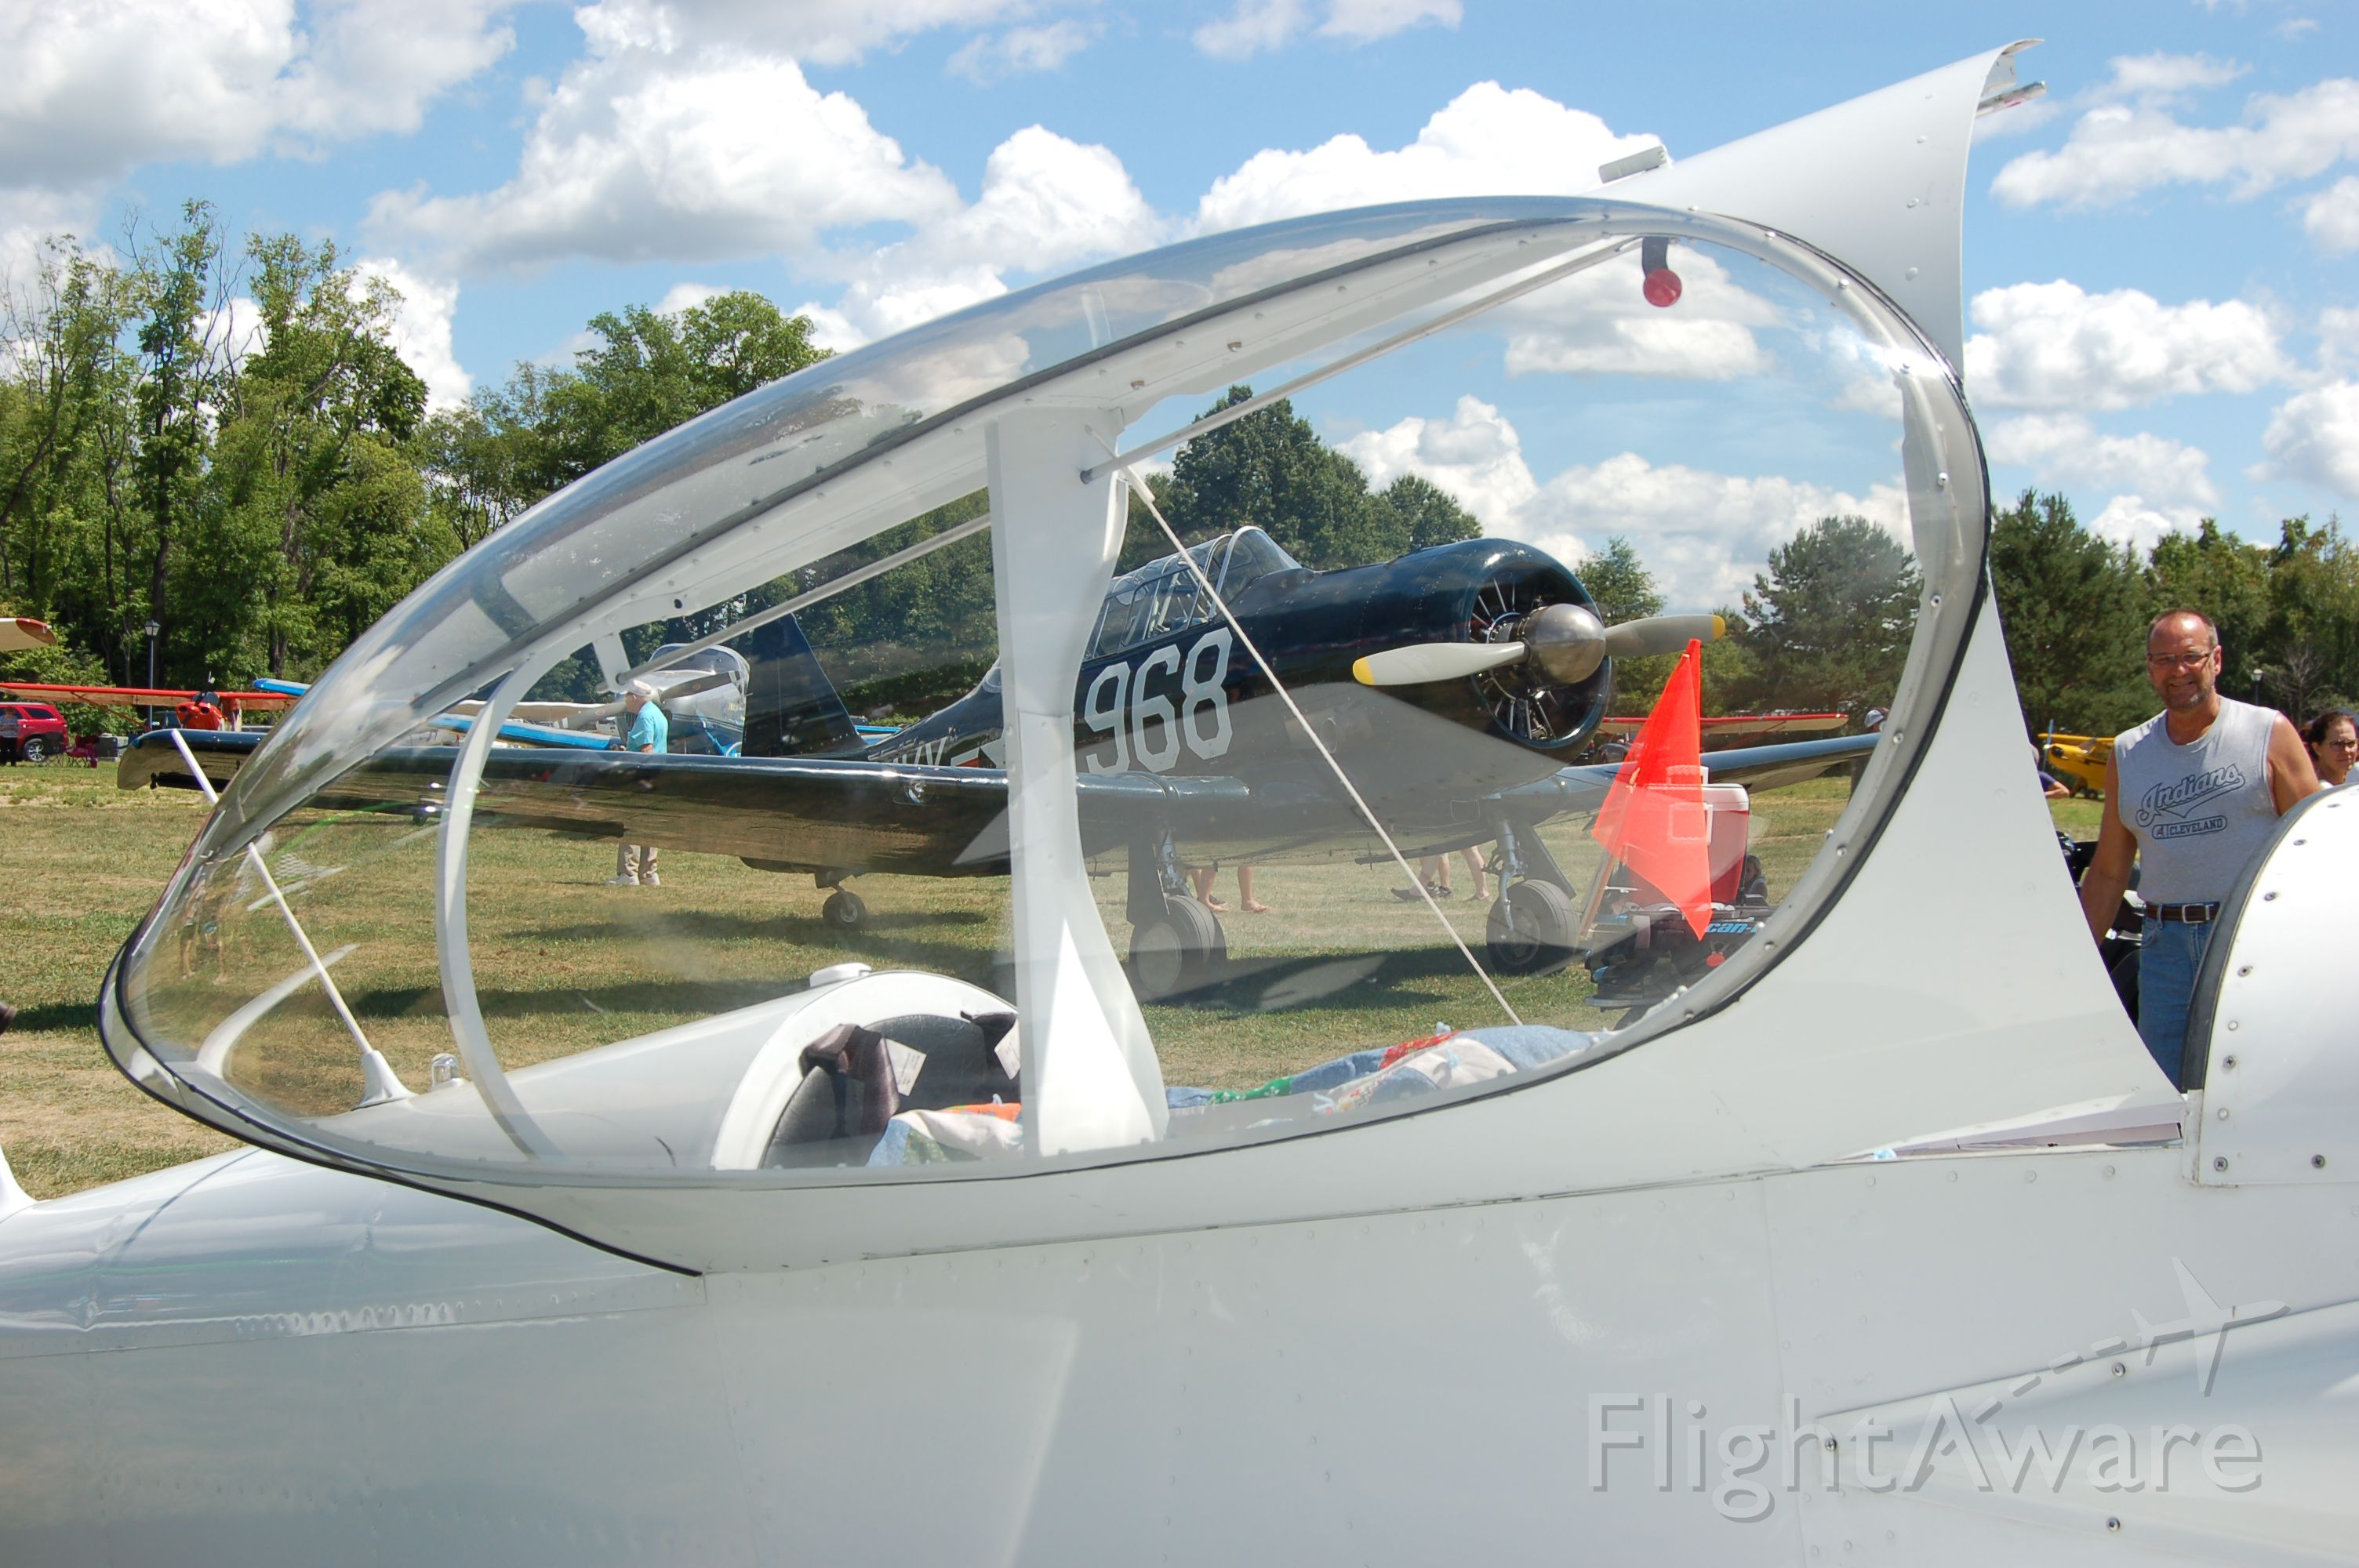 — — - Wings & Wheels 2016! Sloas Field. Cool shot of WWII vintage Navy SNJ (I think) through the canopy of a Homebuilt